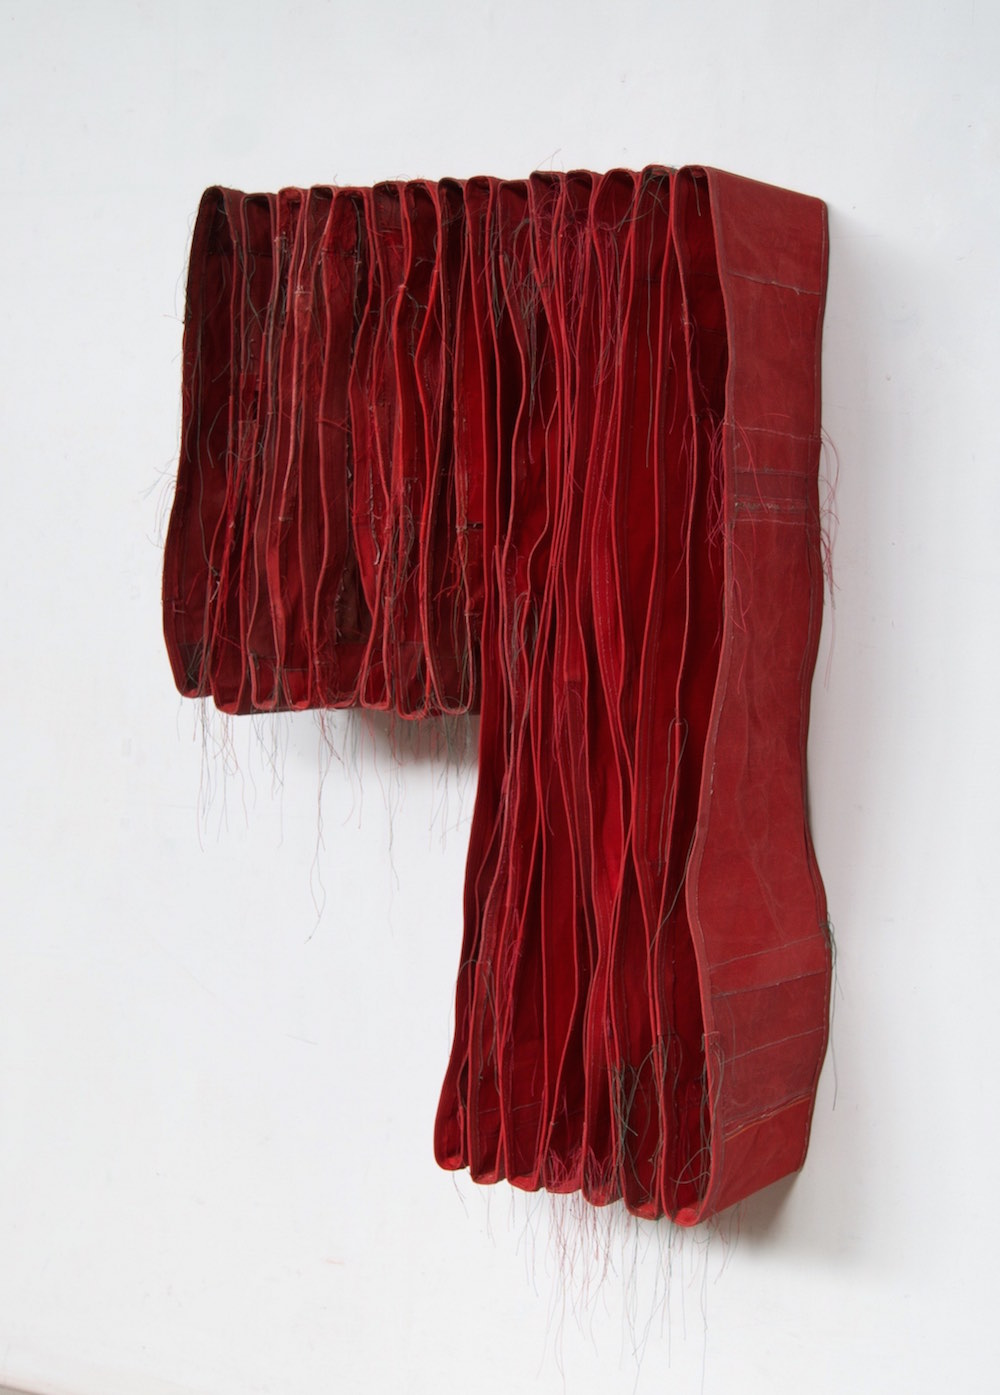 Simon Callery - Punctured Red Wallspine, 92 x 64 x 26 cm.